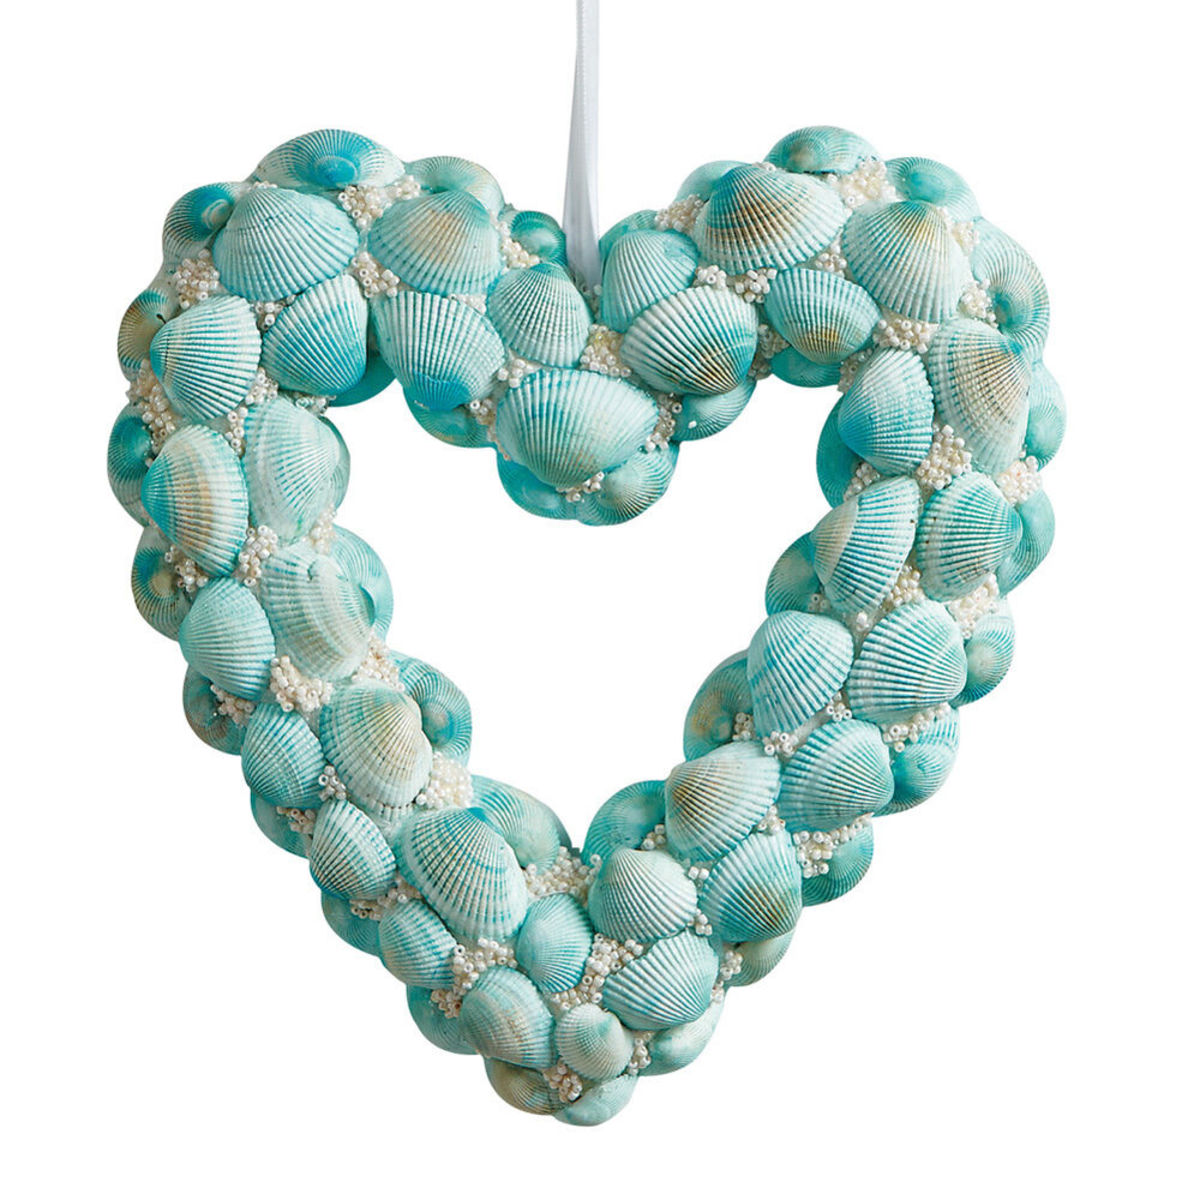 This lovely painted shell wreath shows a lot of love